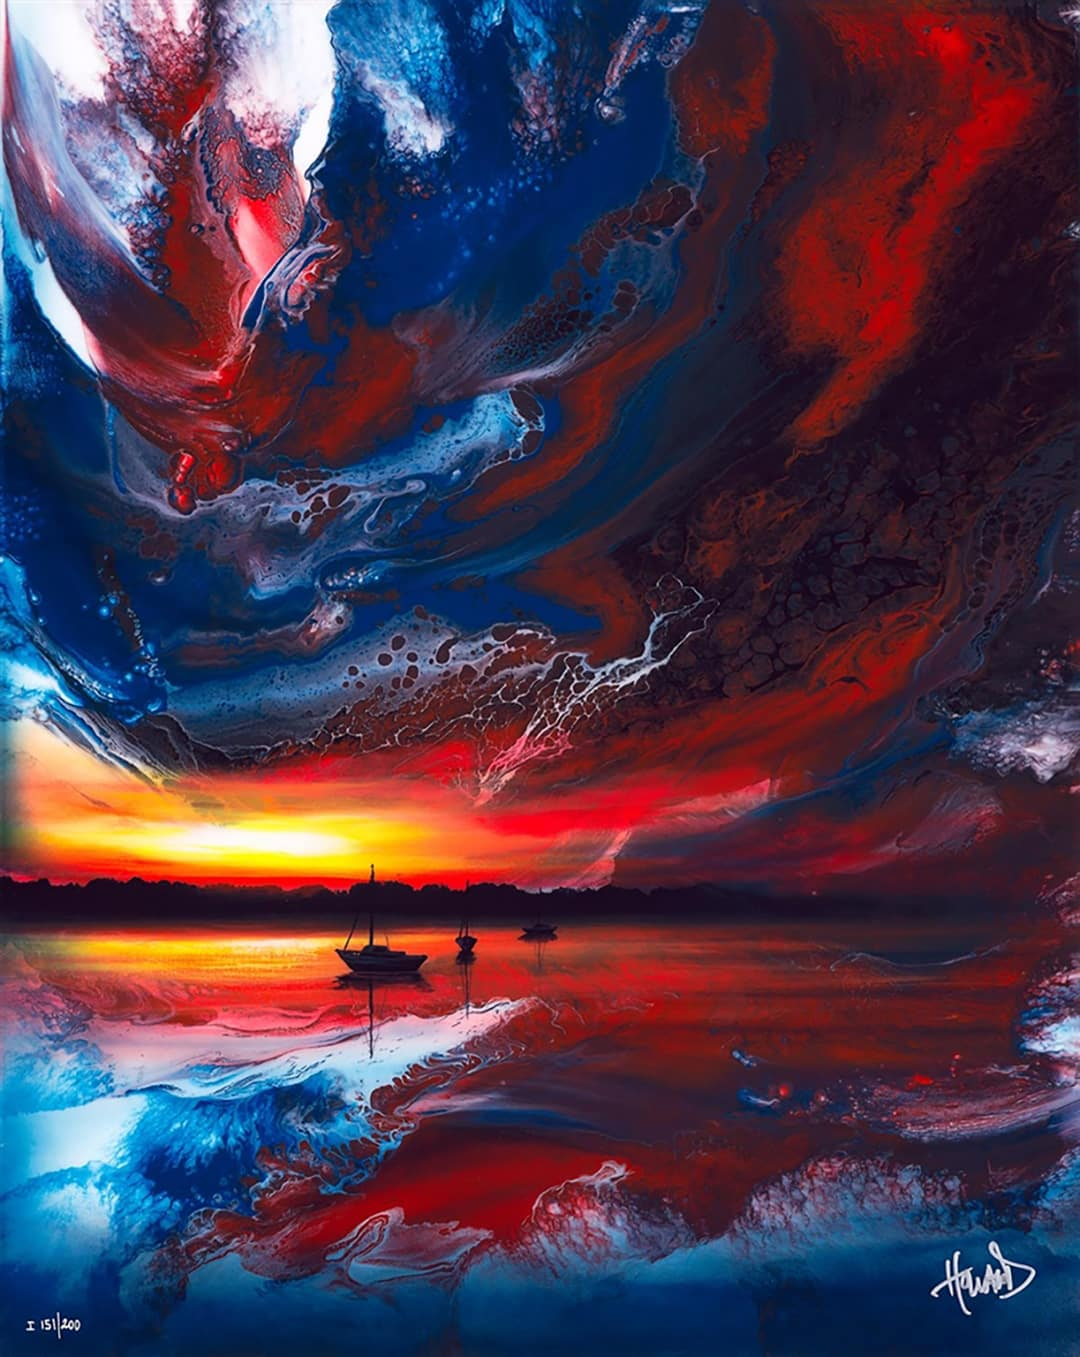 Ashton Howard painting of a sailboat on a calm lake in front of a vibrantsunset